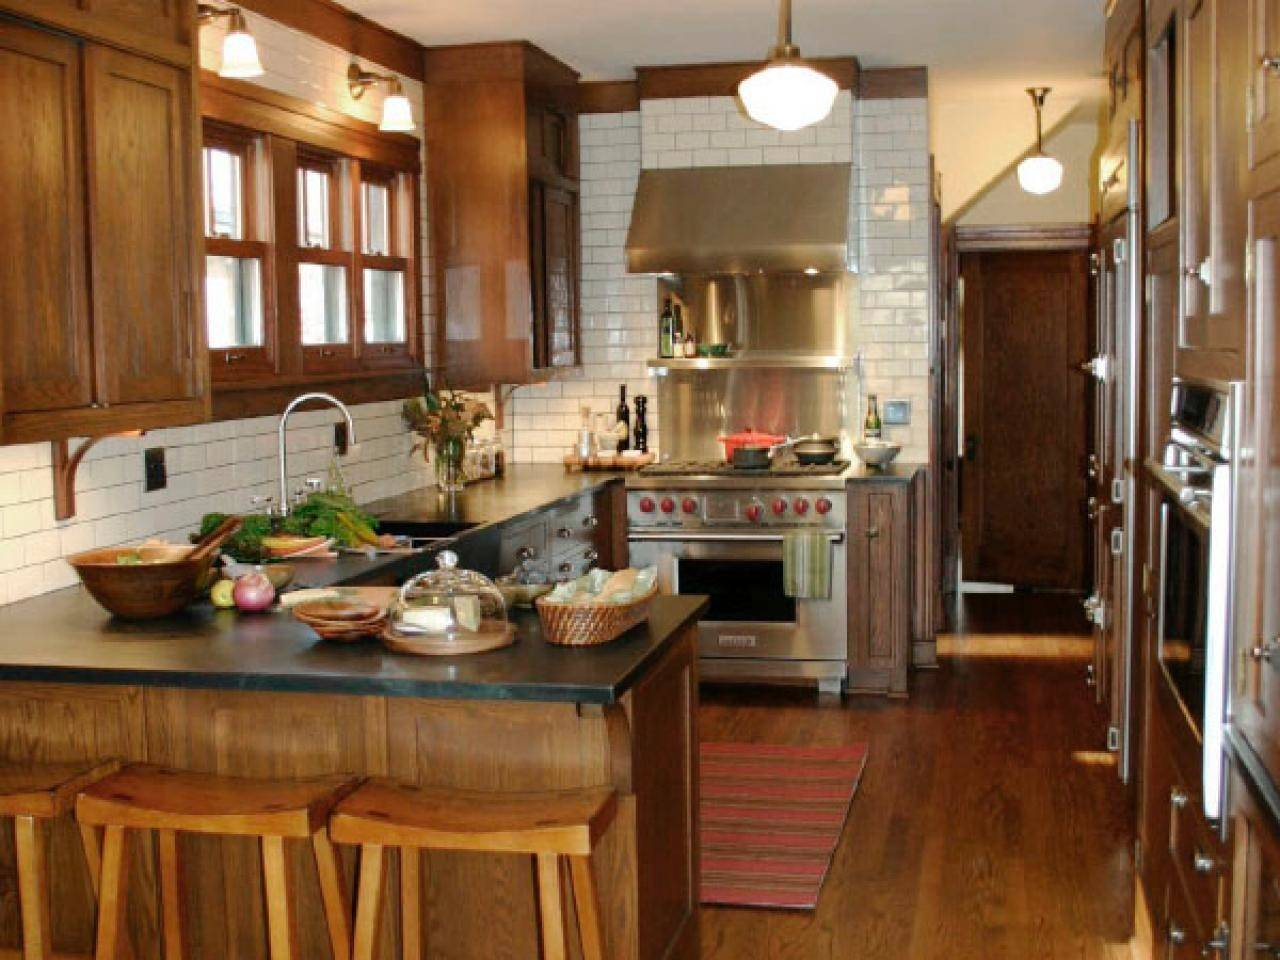 19 Perfect Images Small Peninsula Kitchen Layout - Barb Homes